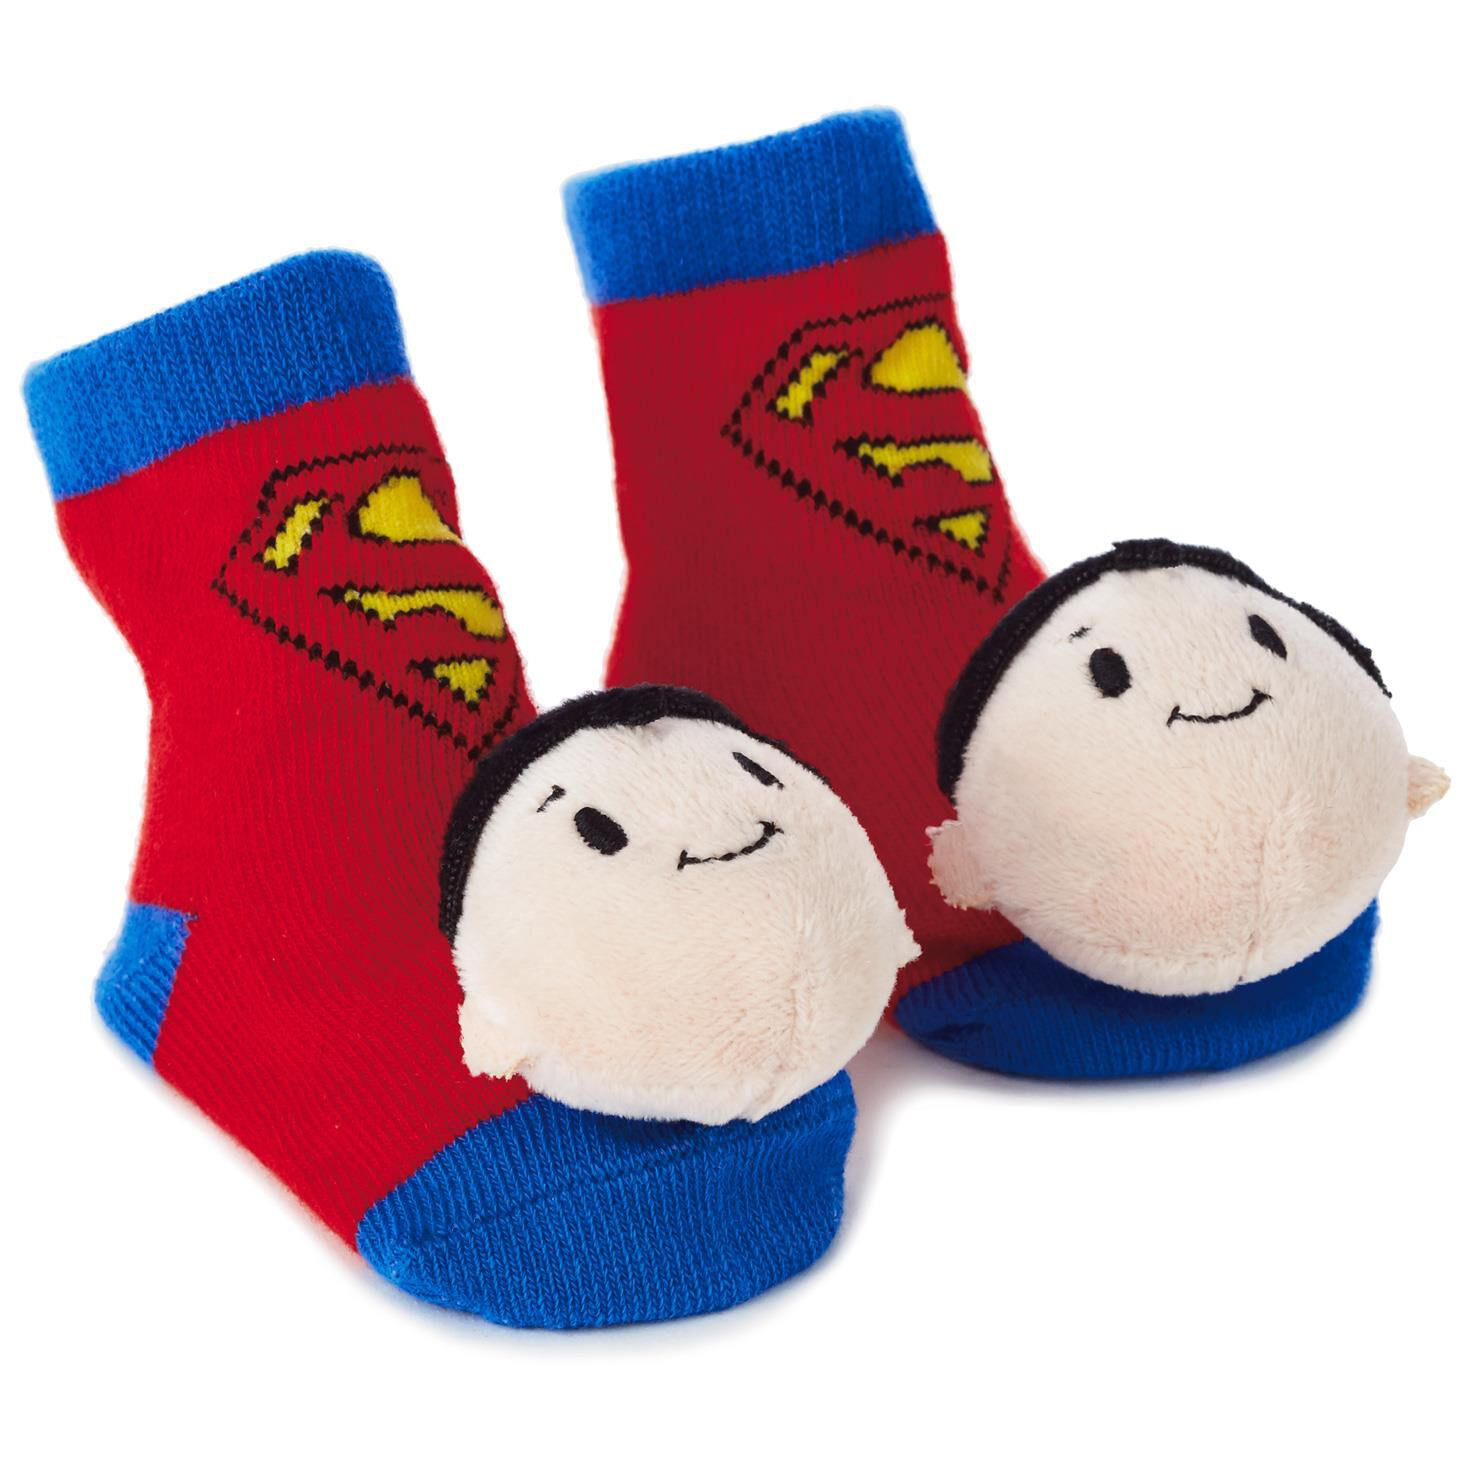 Superman Itty Bittys Baby Rattle Socks Baby Clothes Hallmark